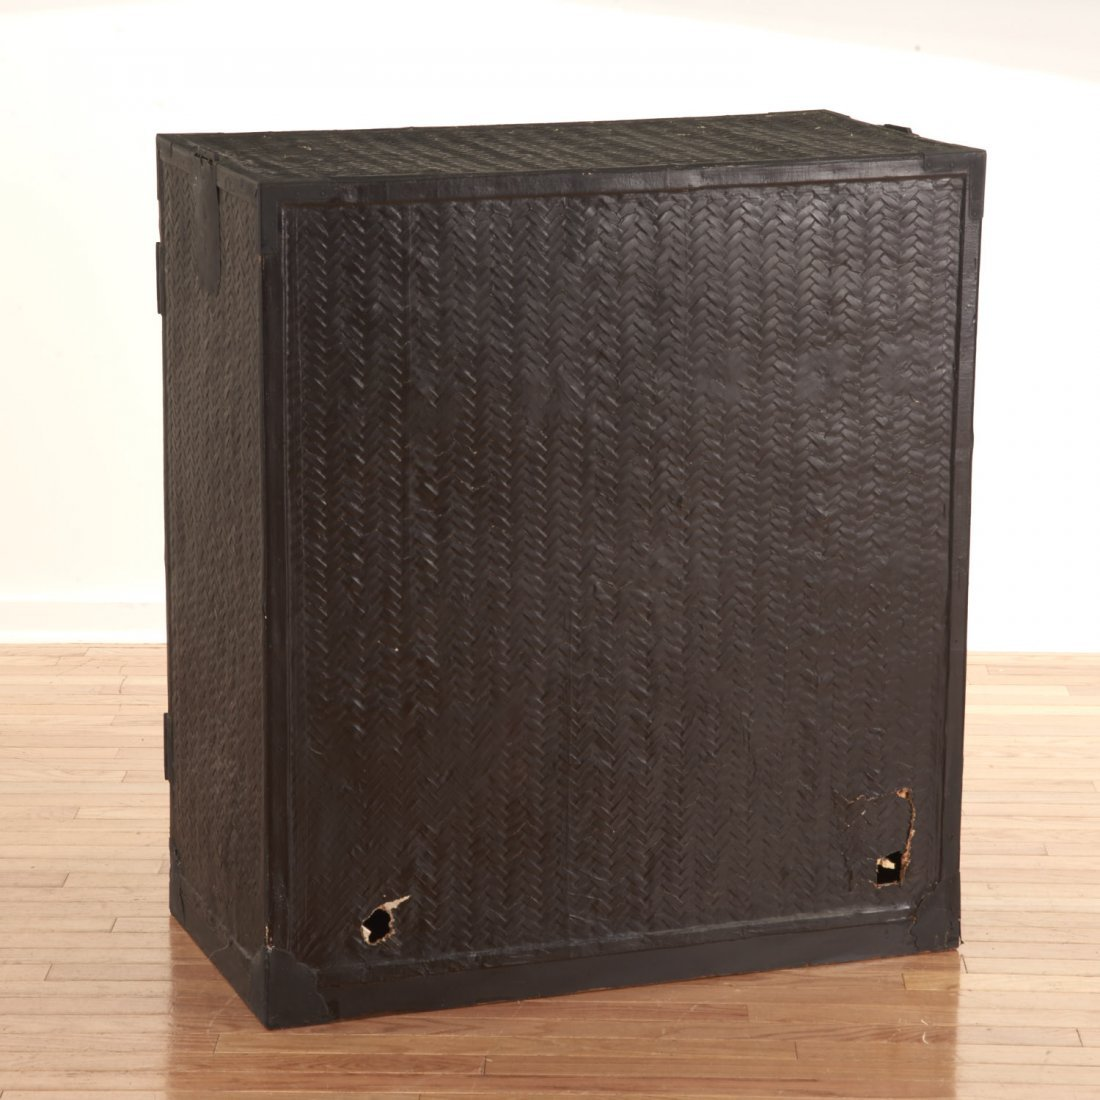 Japanese black painted rattan traveling chest - 5